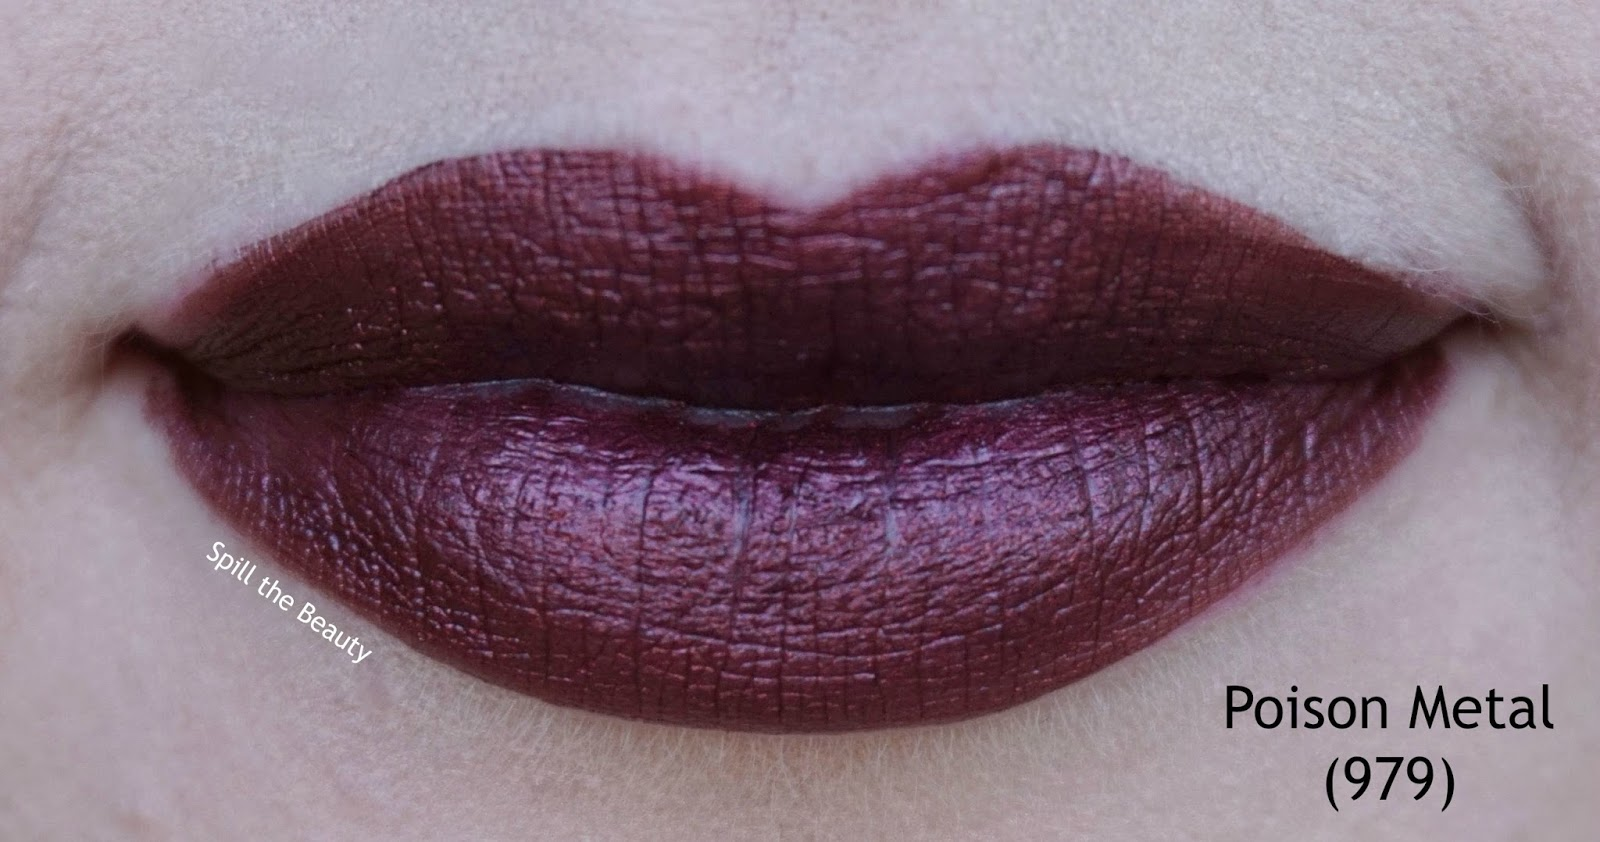 dior rouge dior liquid lipstick frenetic matte poison metal hectic matte shock matte swatches review lips - poison metal